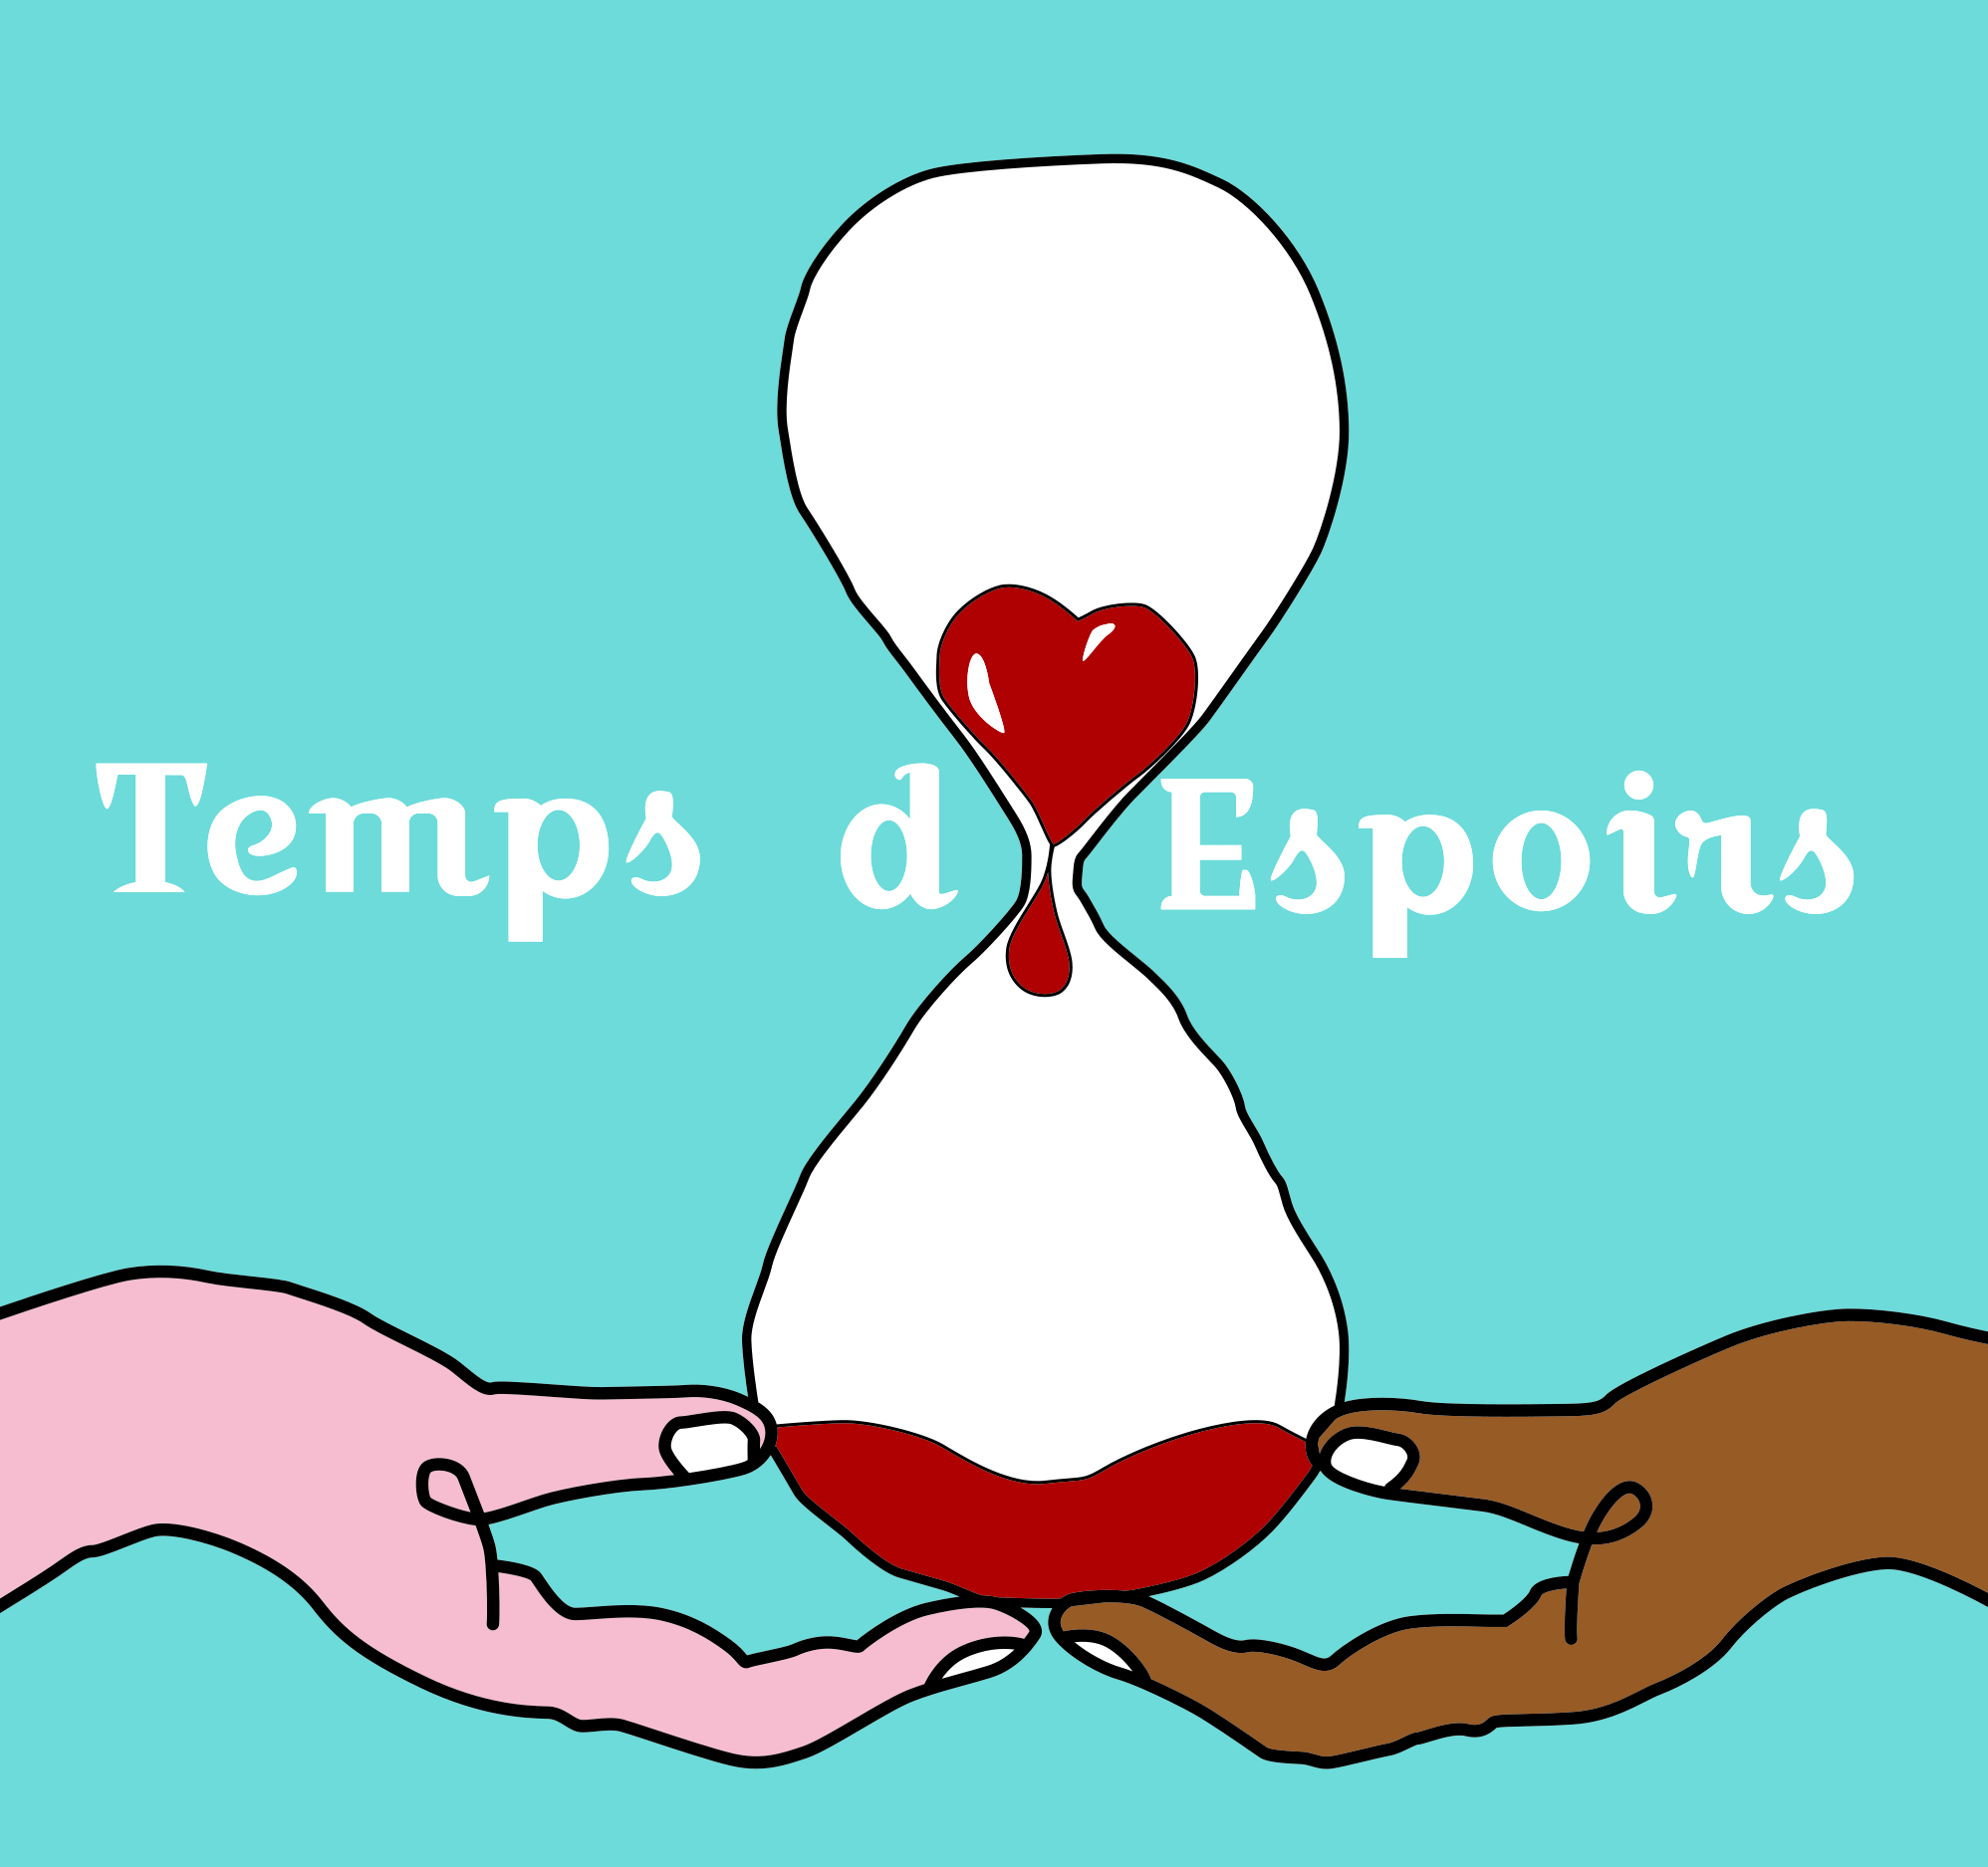 Association - Temps d'espoirs